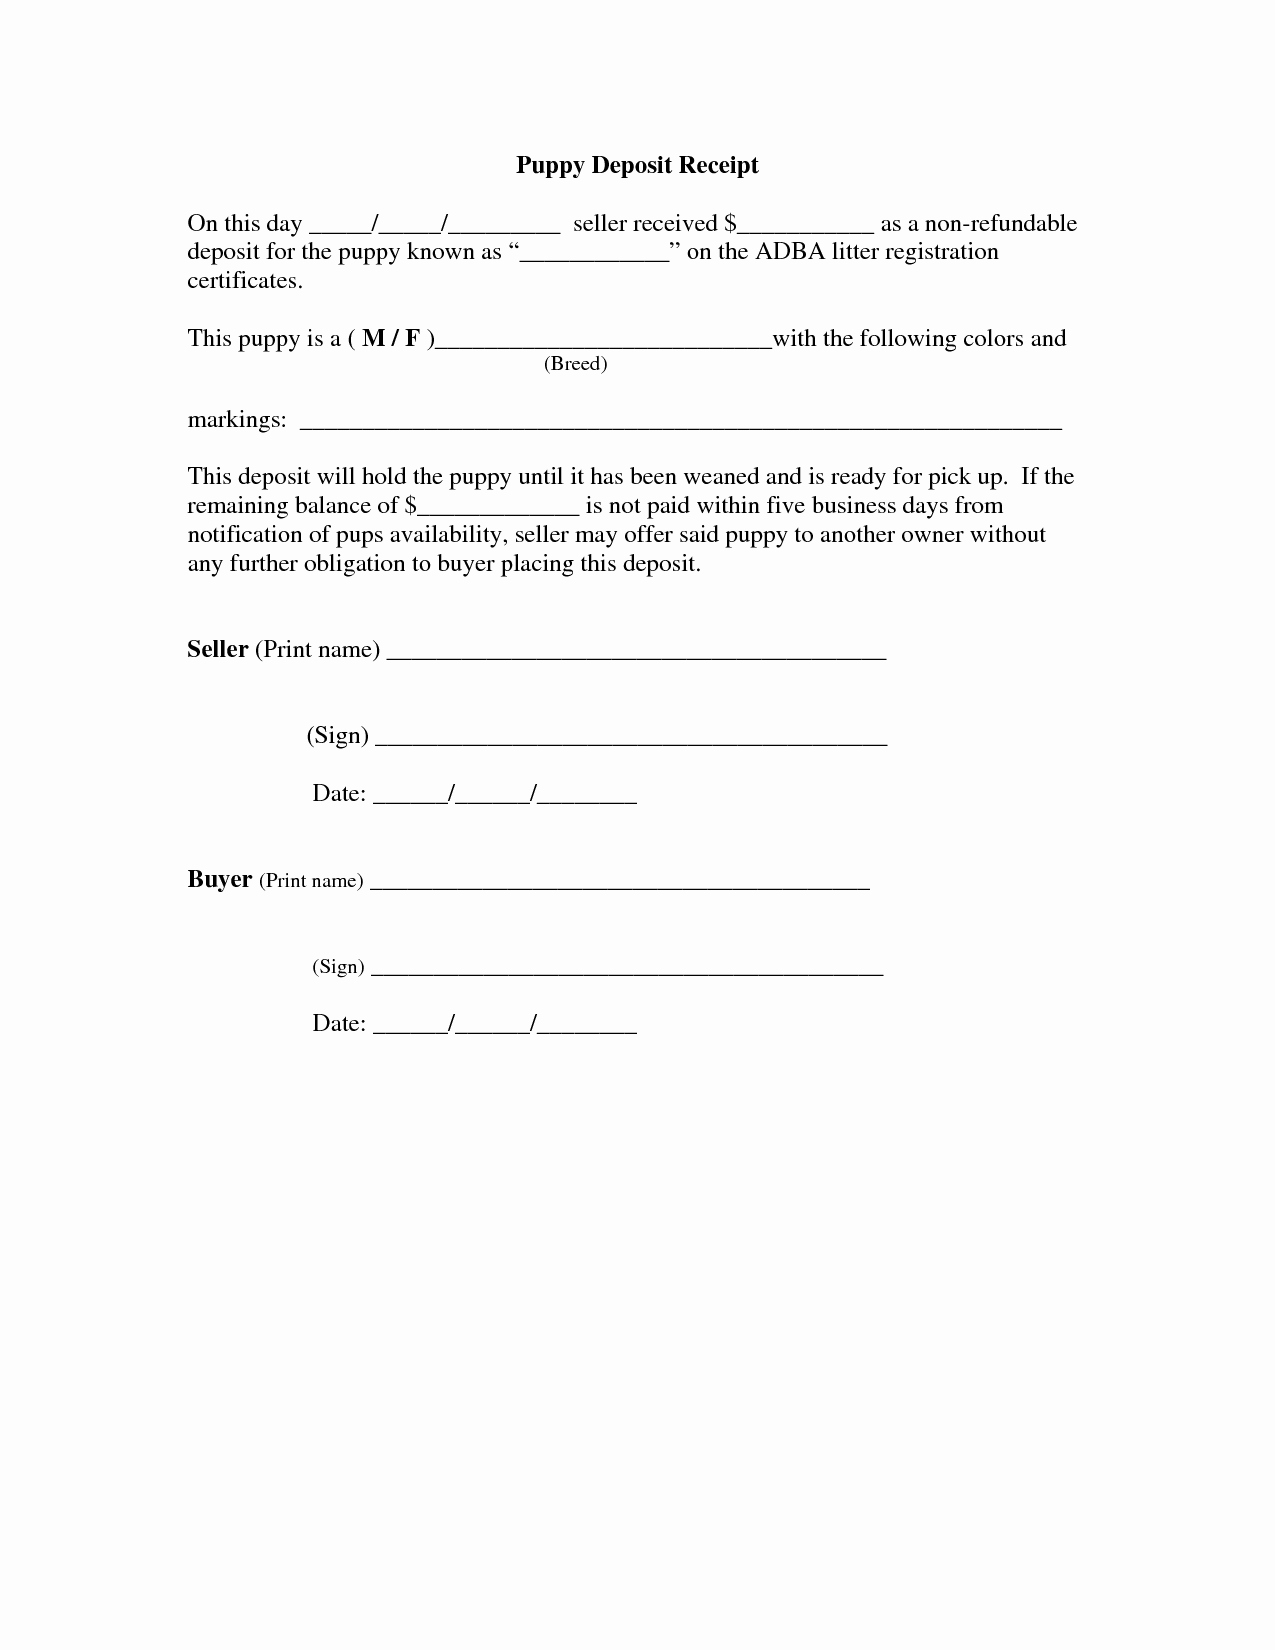 Puppy Sale Contract Template Awesome Of Car Deposit Agreement Template Car Sale Deposit